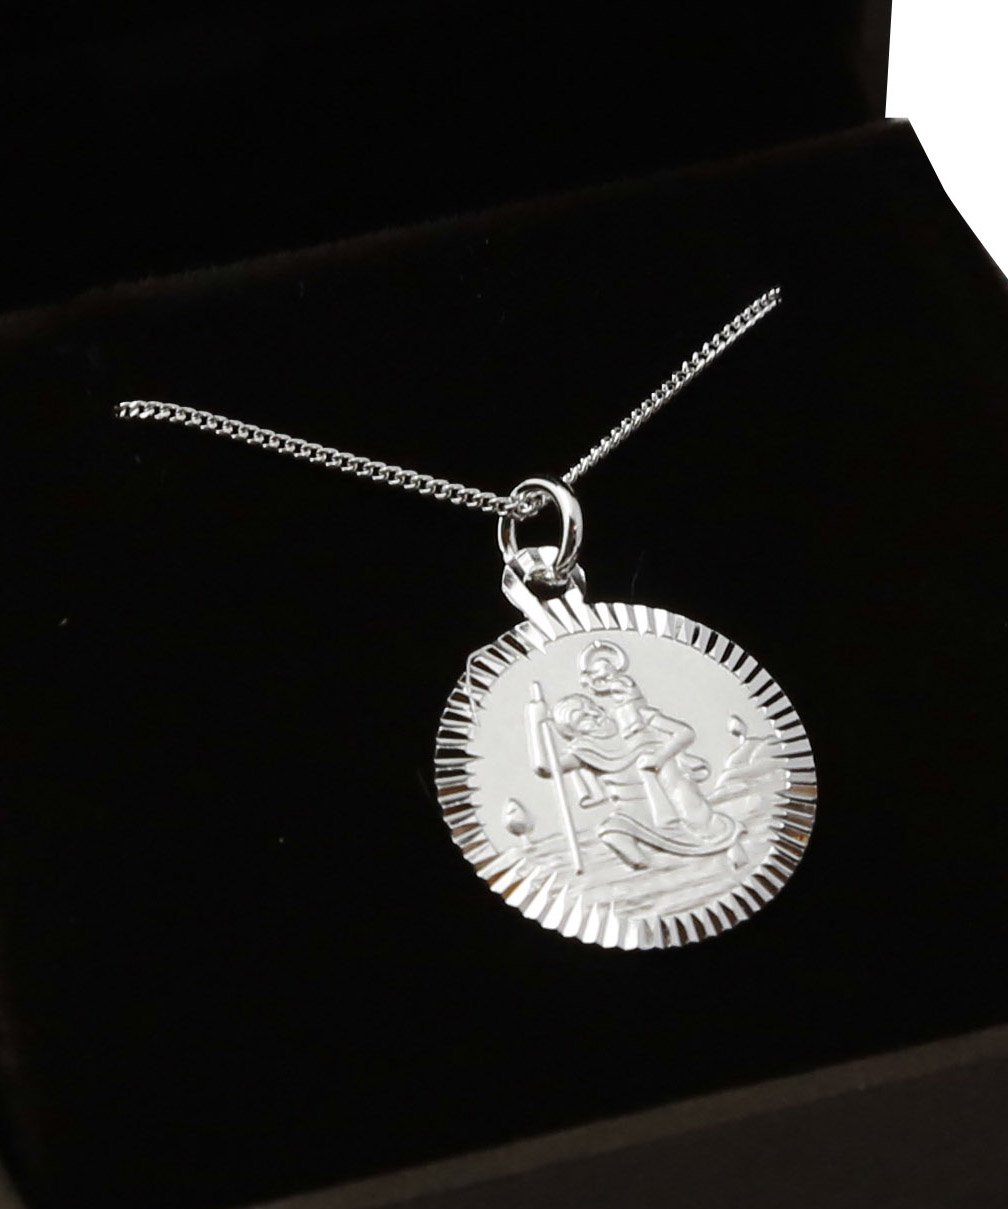 Dainty Sterling Silver Saint Christopher Necklace.Hallmarked 925. Gift for Christening/Confirmation or Leaving Home Silver Basket 375B